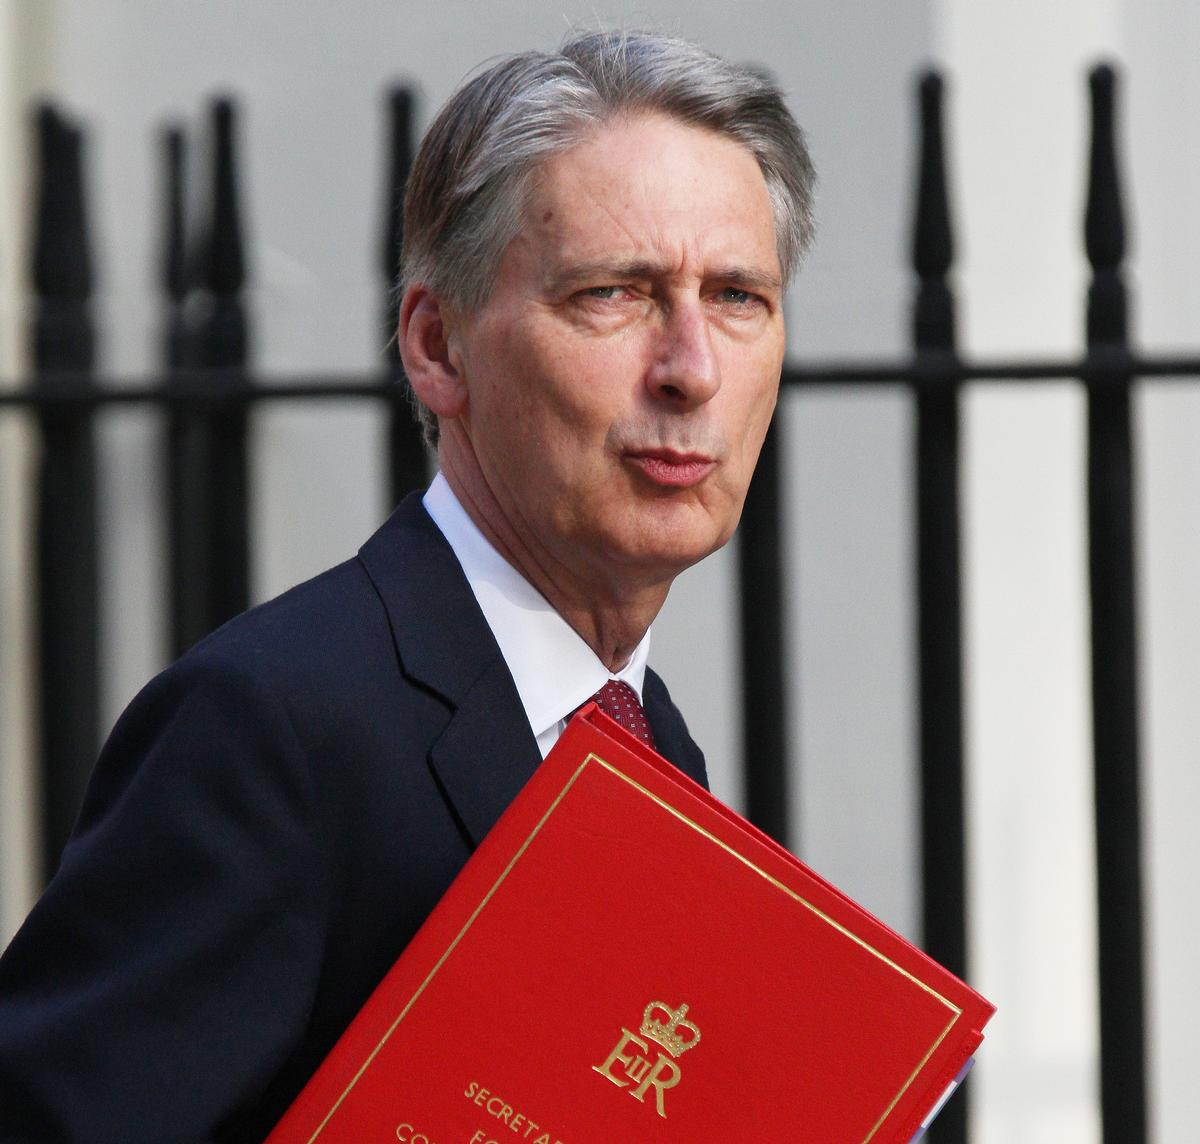 Chancellor Philip Hammond's budget – possibly his last – had a distinct lack of directives mentioning physical activity, sport, wellbeing or hospitality